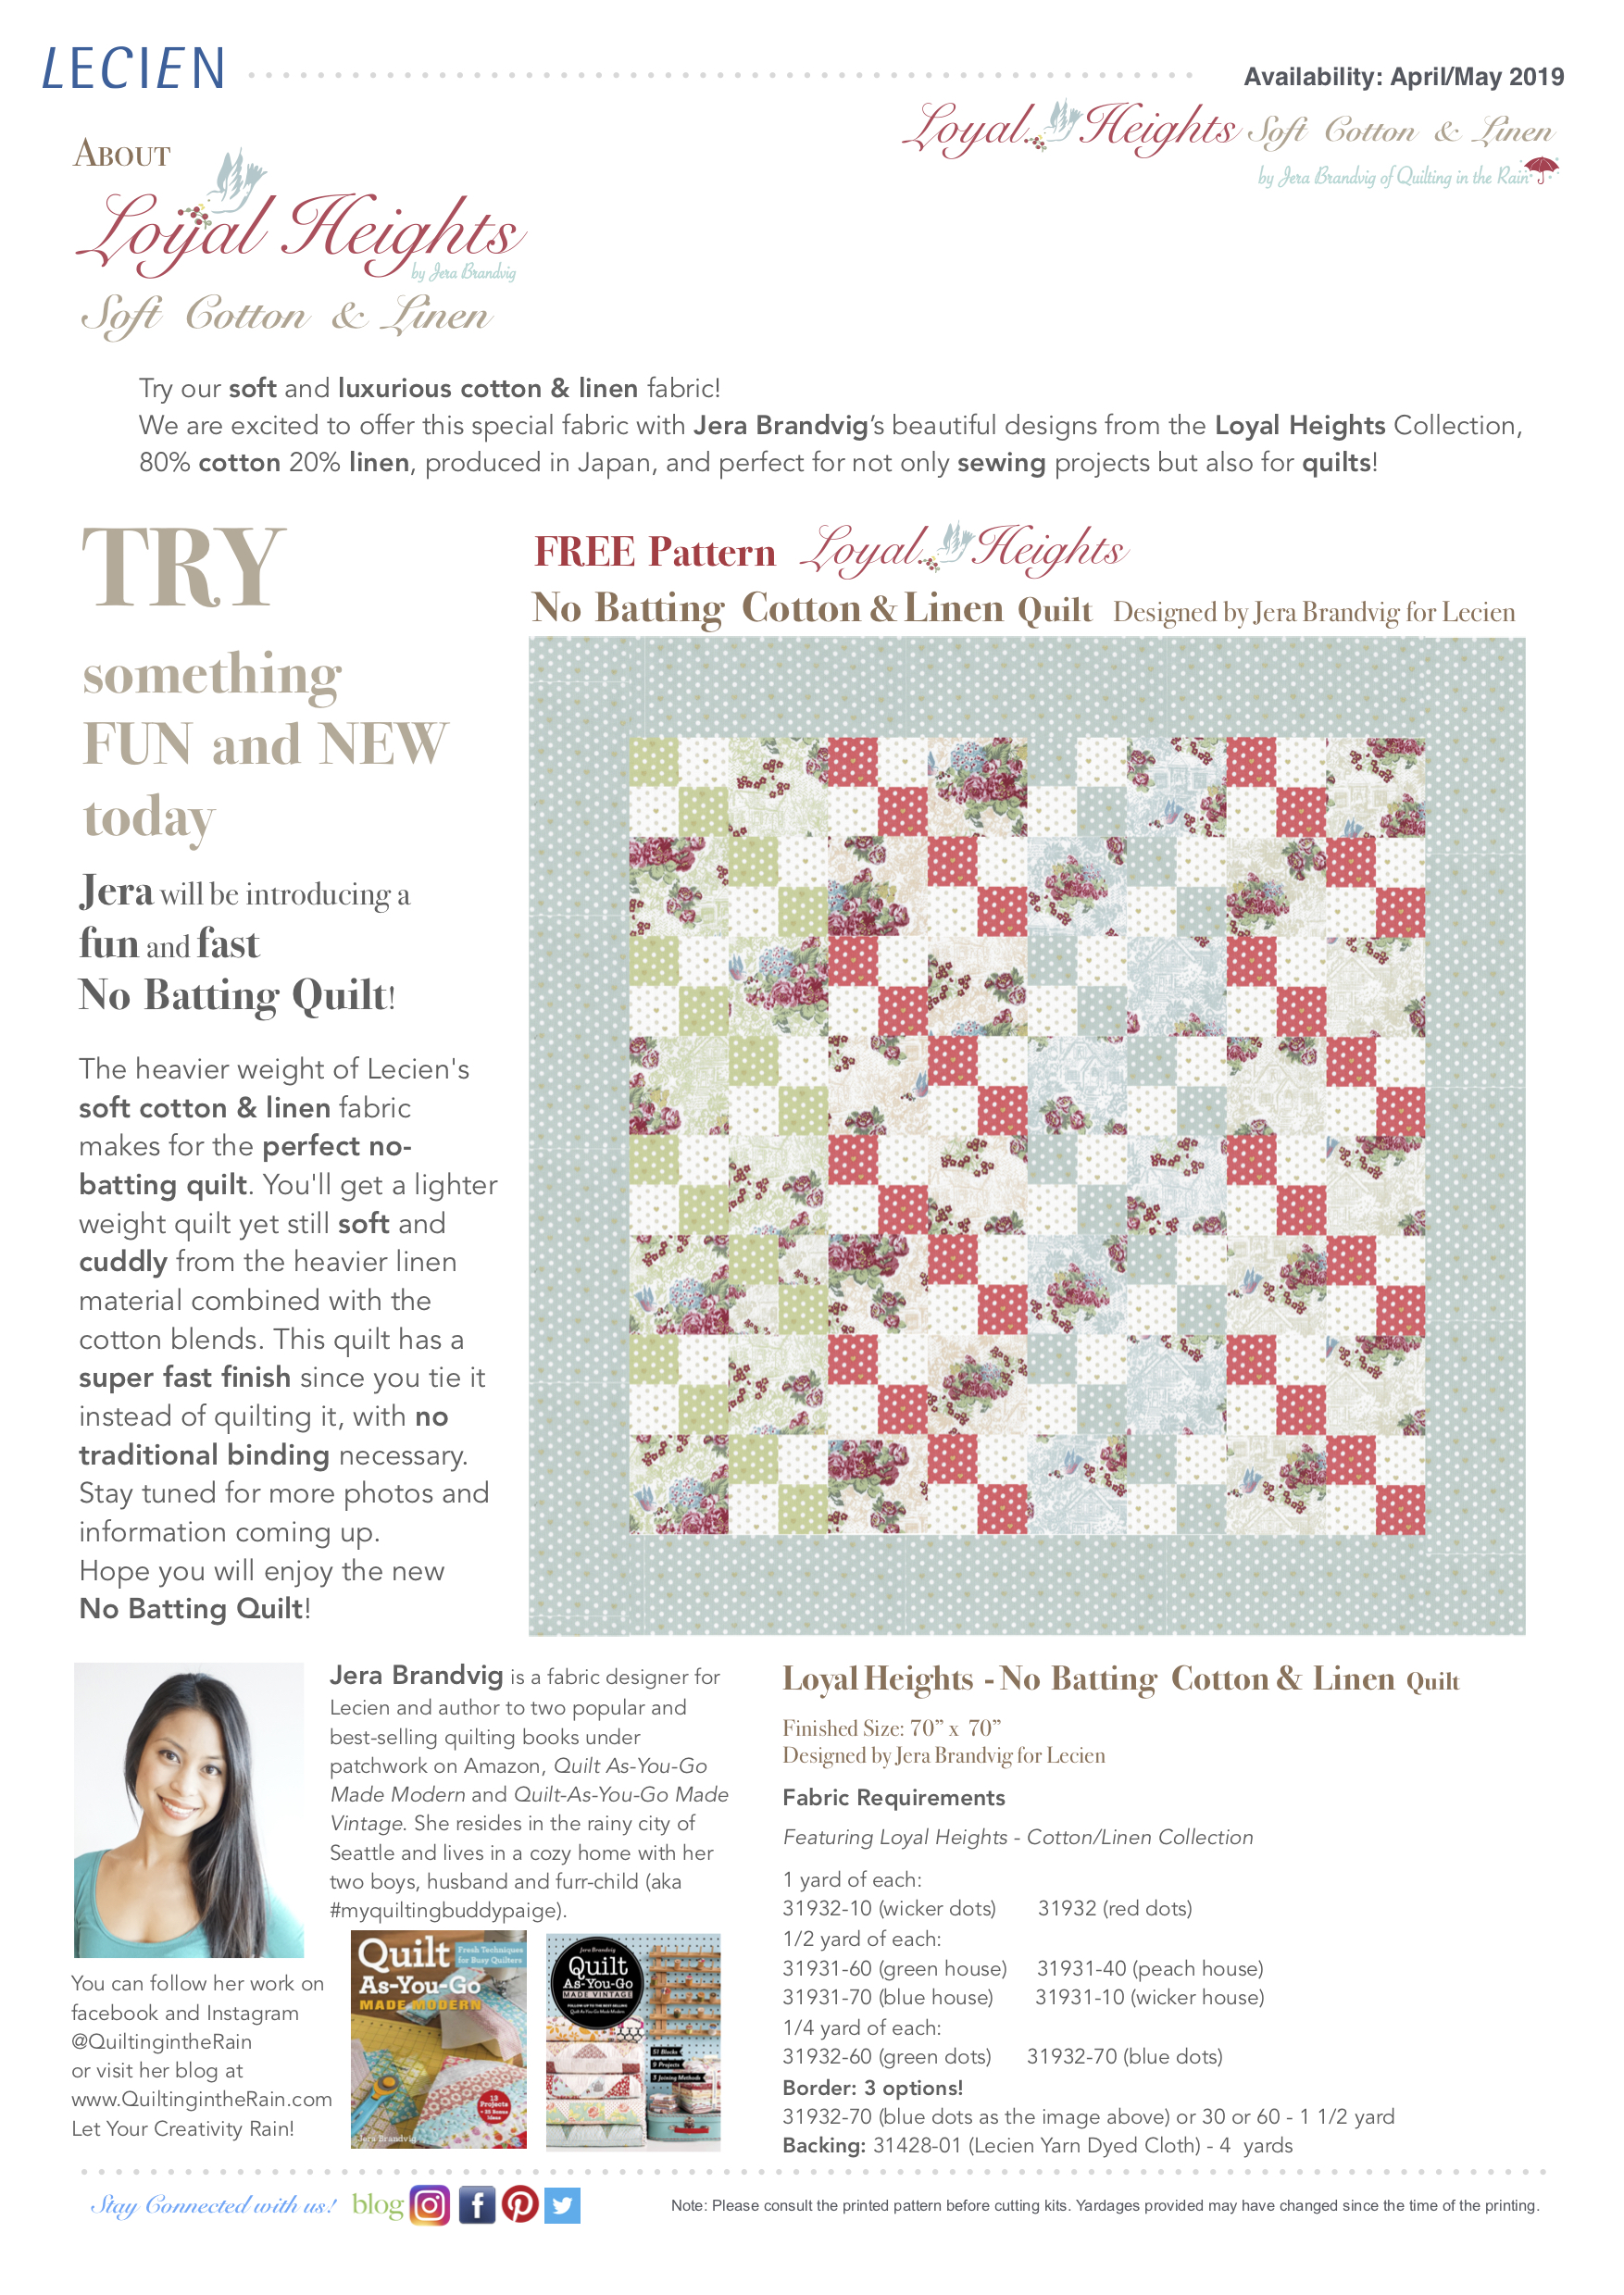 Loyal Heights - No Batting Cotton & Linen Quilt